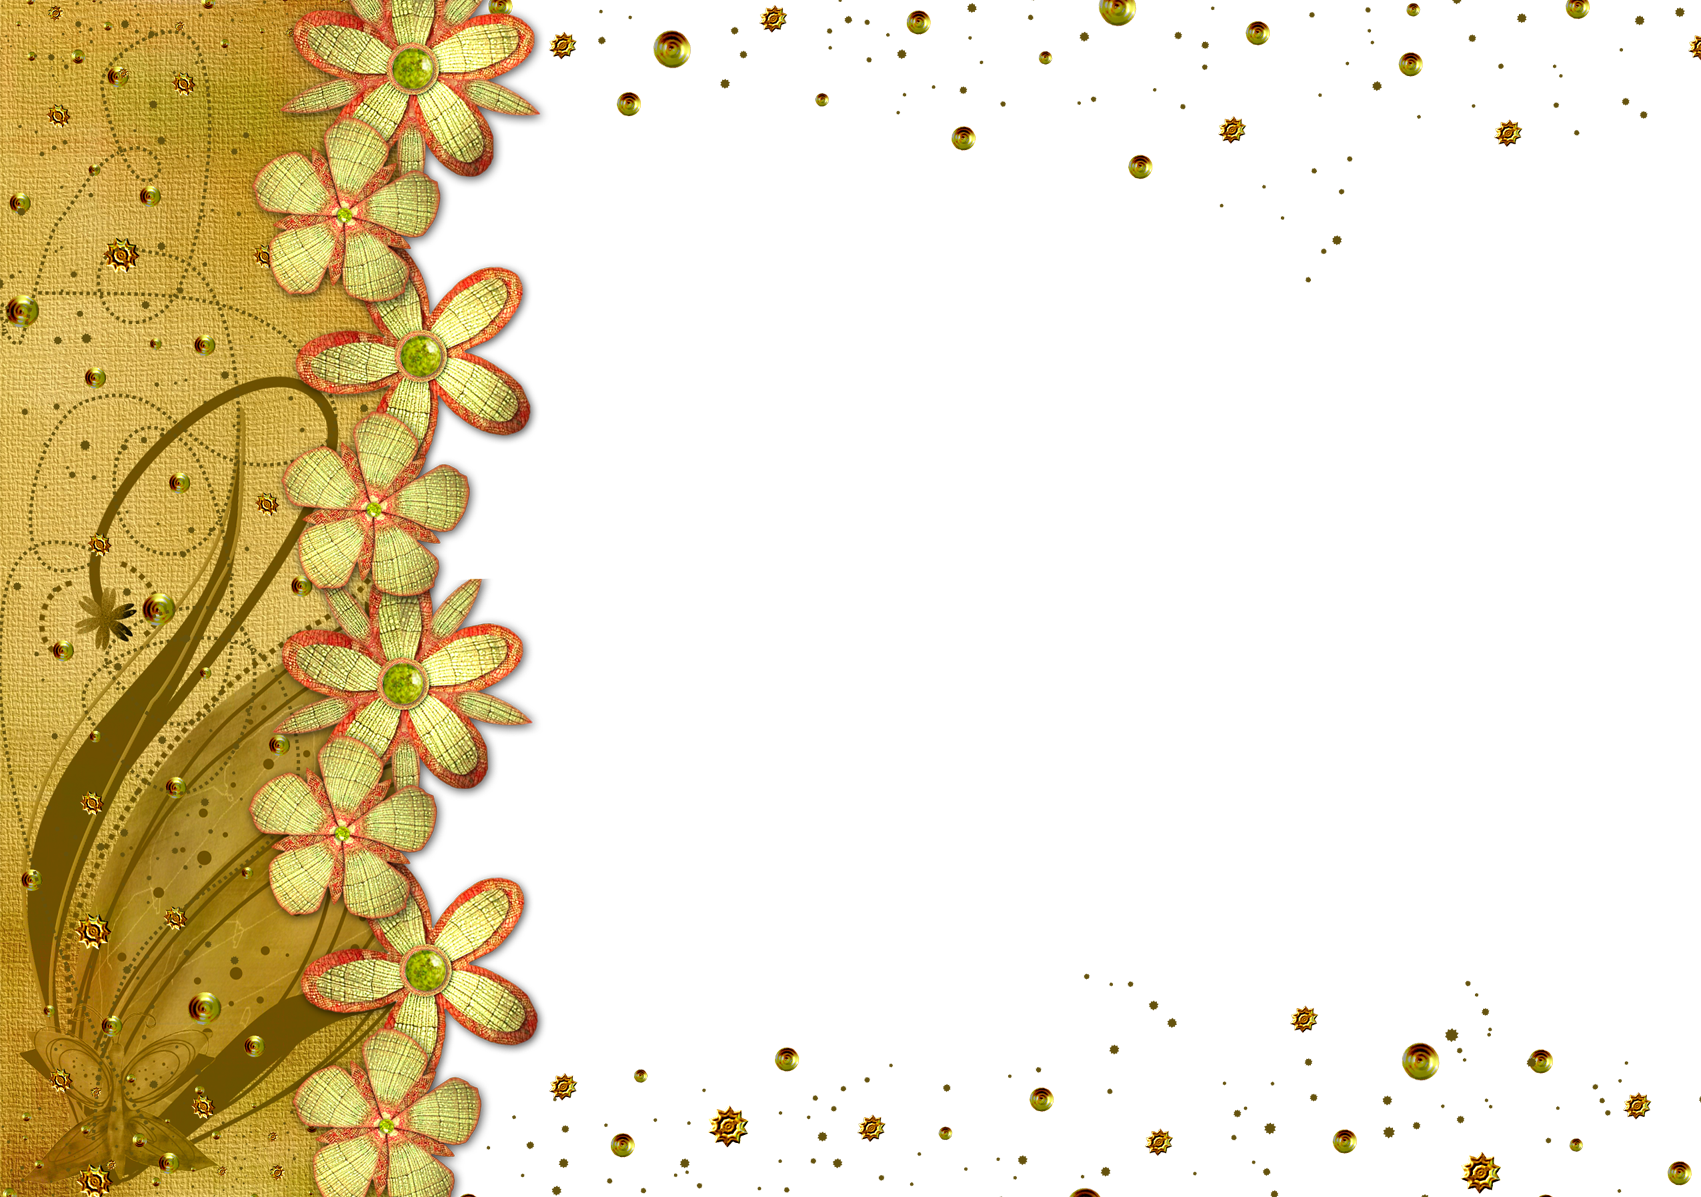 b7ad8231602 Flower frame png - psd